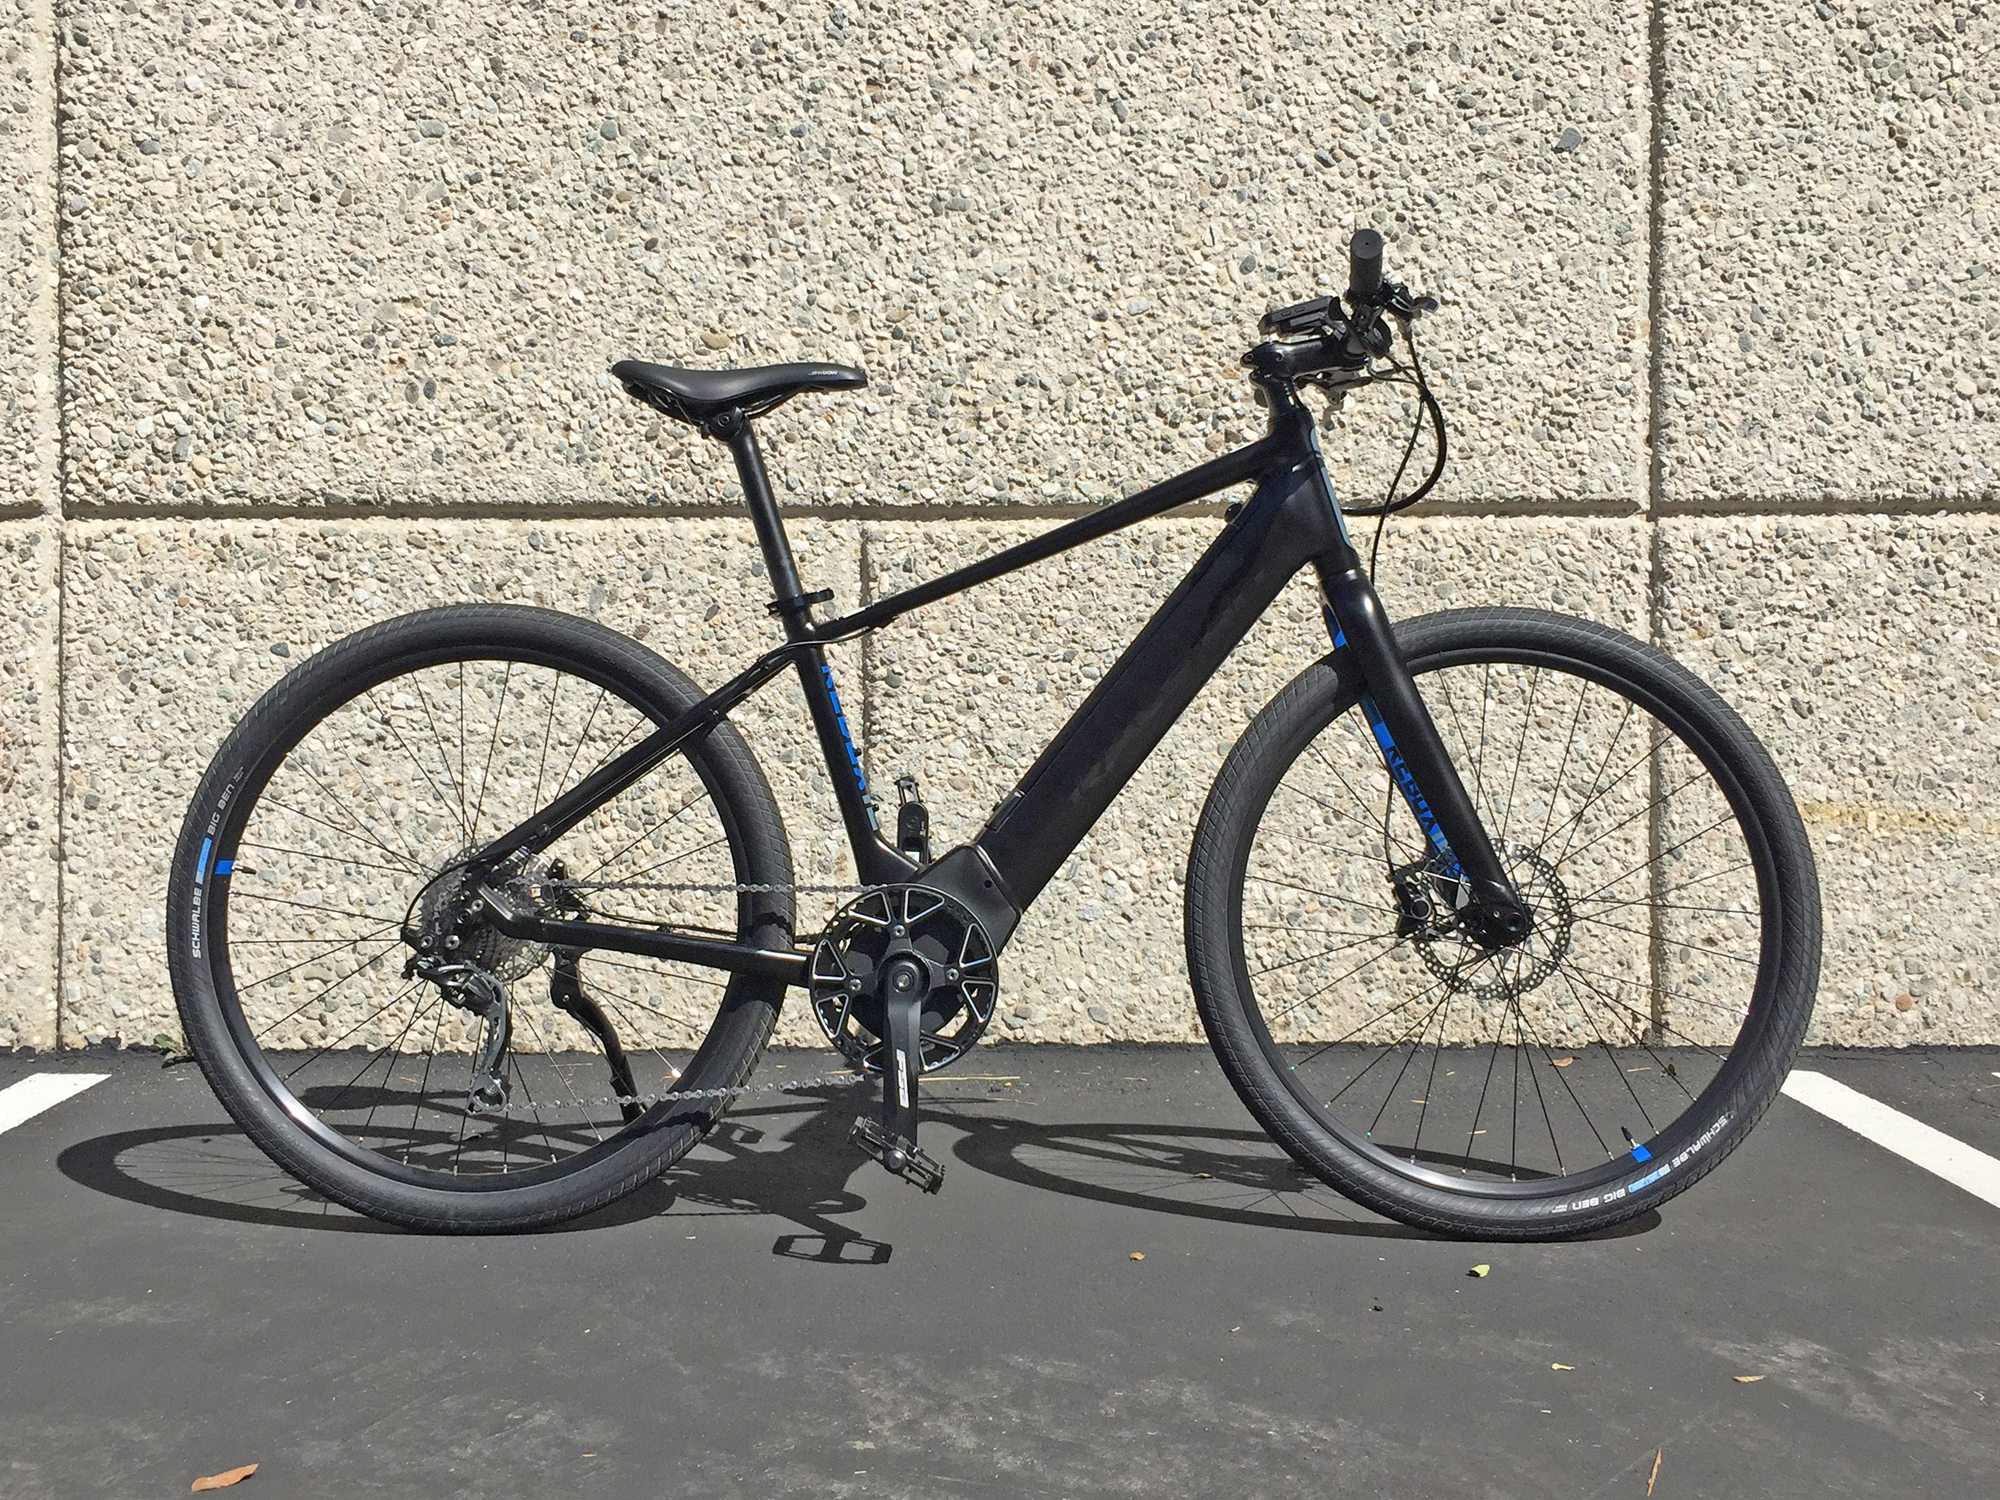 Raleigh Redux Ie Review Prices Specs Videos Photos